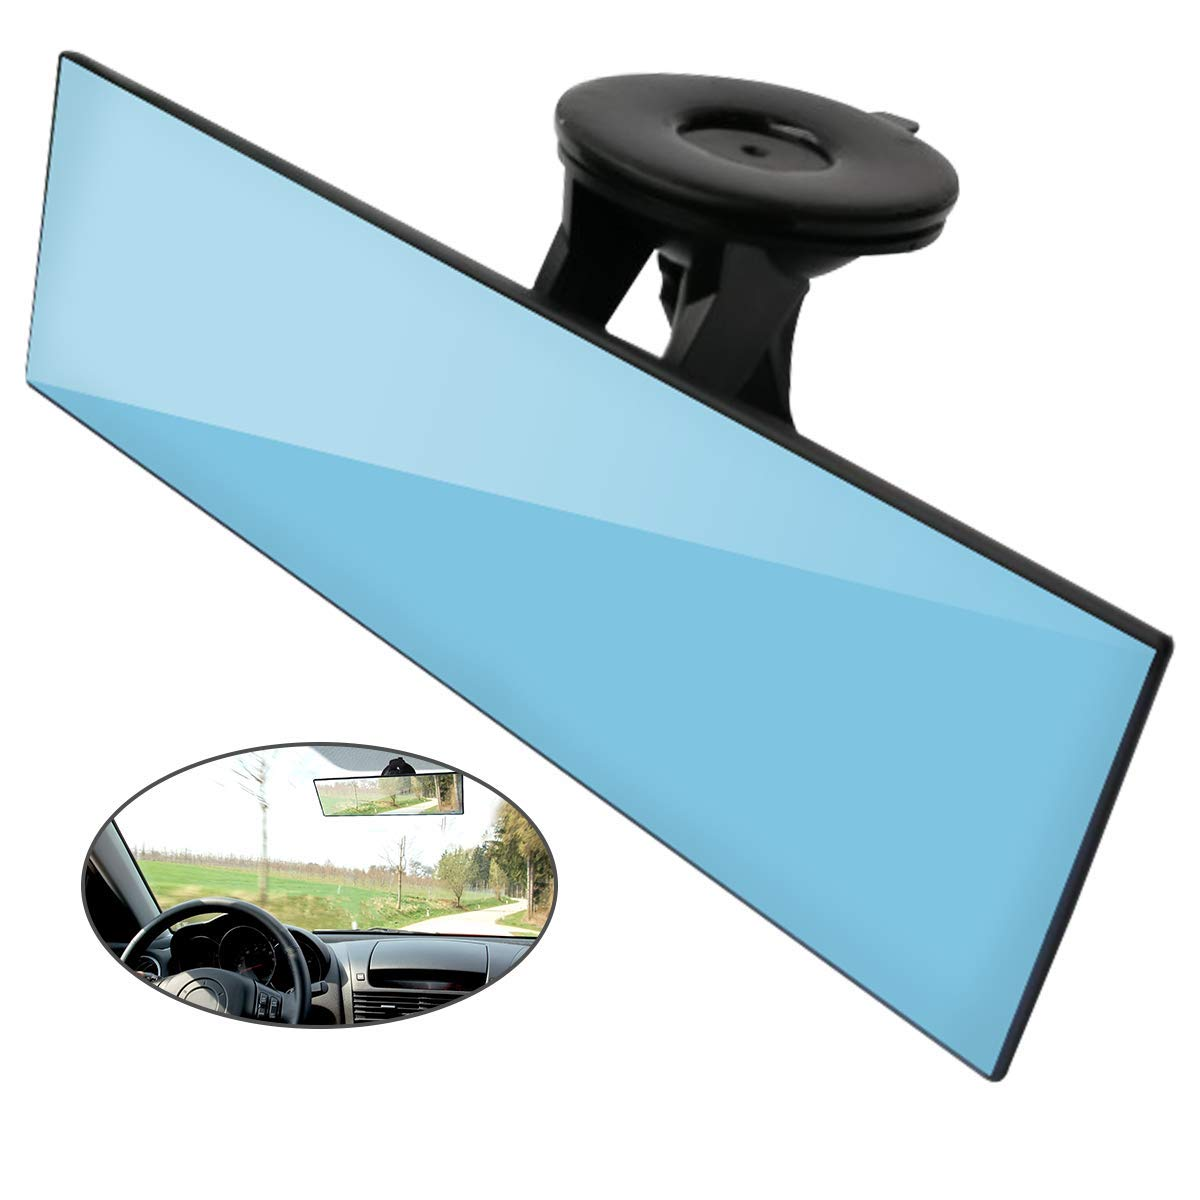 Reduce Blind Spot and Antiglare(Set of 1) Car Rear View Mirror WACCIU Anti-glare Universal Car Truck Interior Rearview Mirror with Suction Cup Blue Mirror